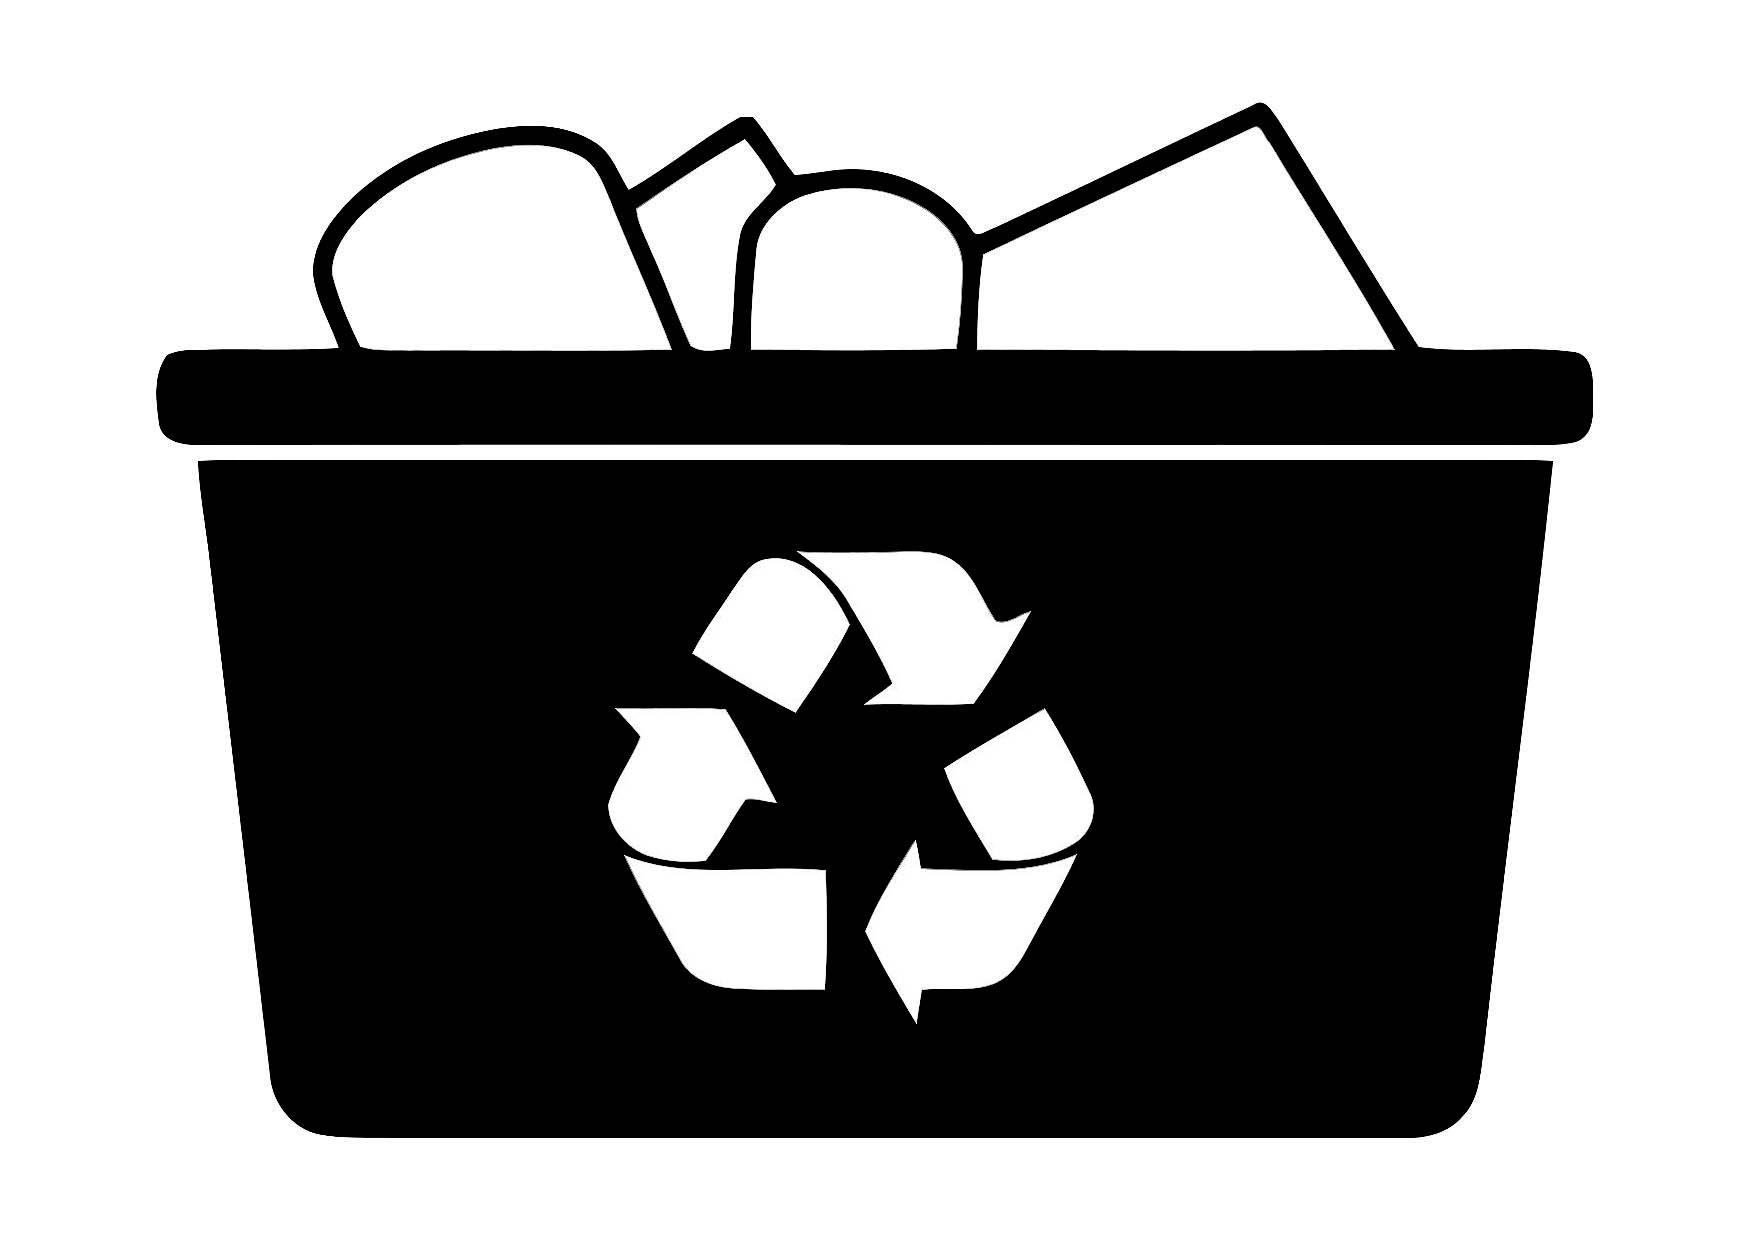 Coloring page recycle - img 11351.